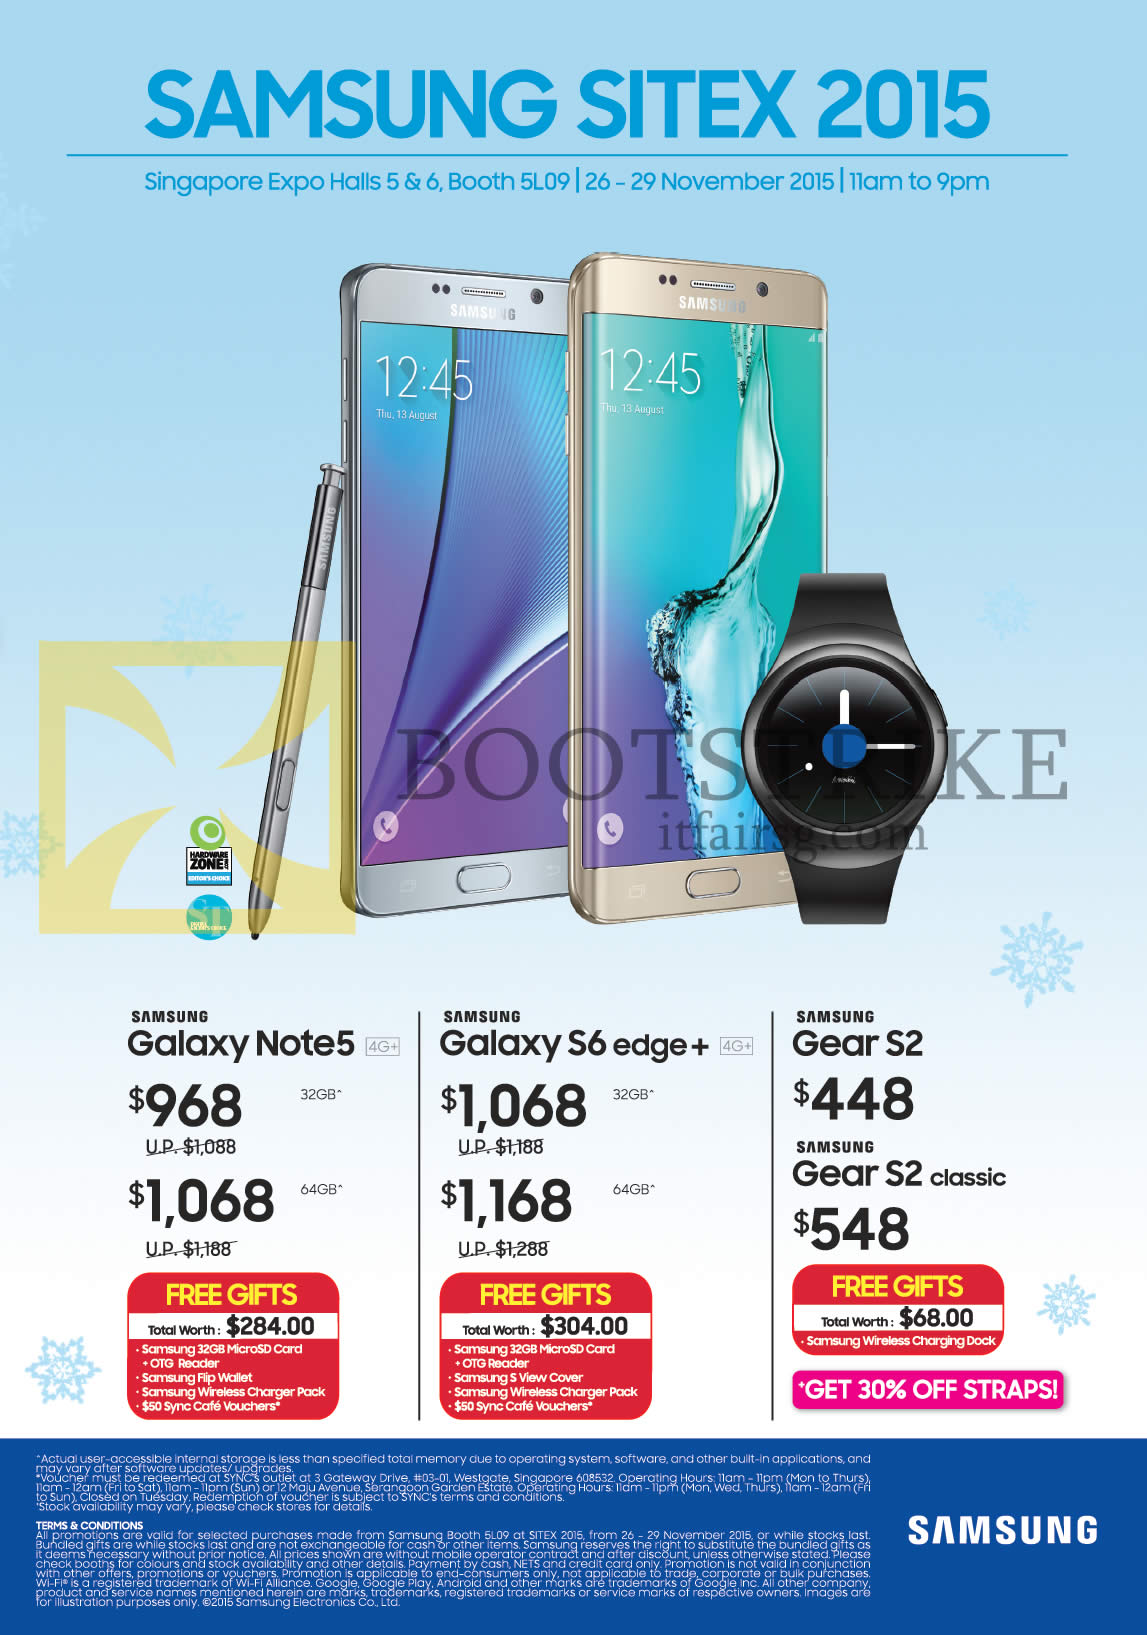 SITEX 2015 price list image brochure of Samsung Tablets Smartphones Galaxy Note 5, S6 Edge Plus, Gear S2, S2 Classic, Free Gifts